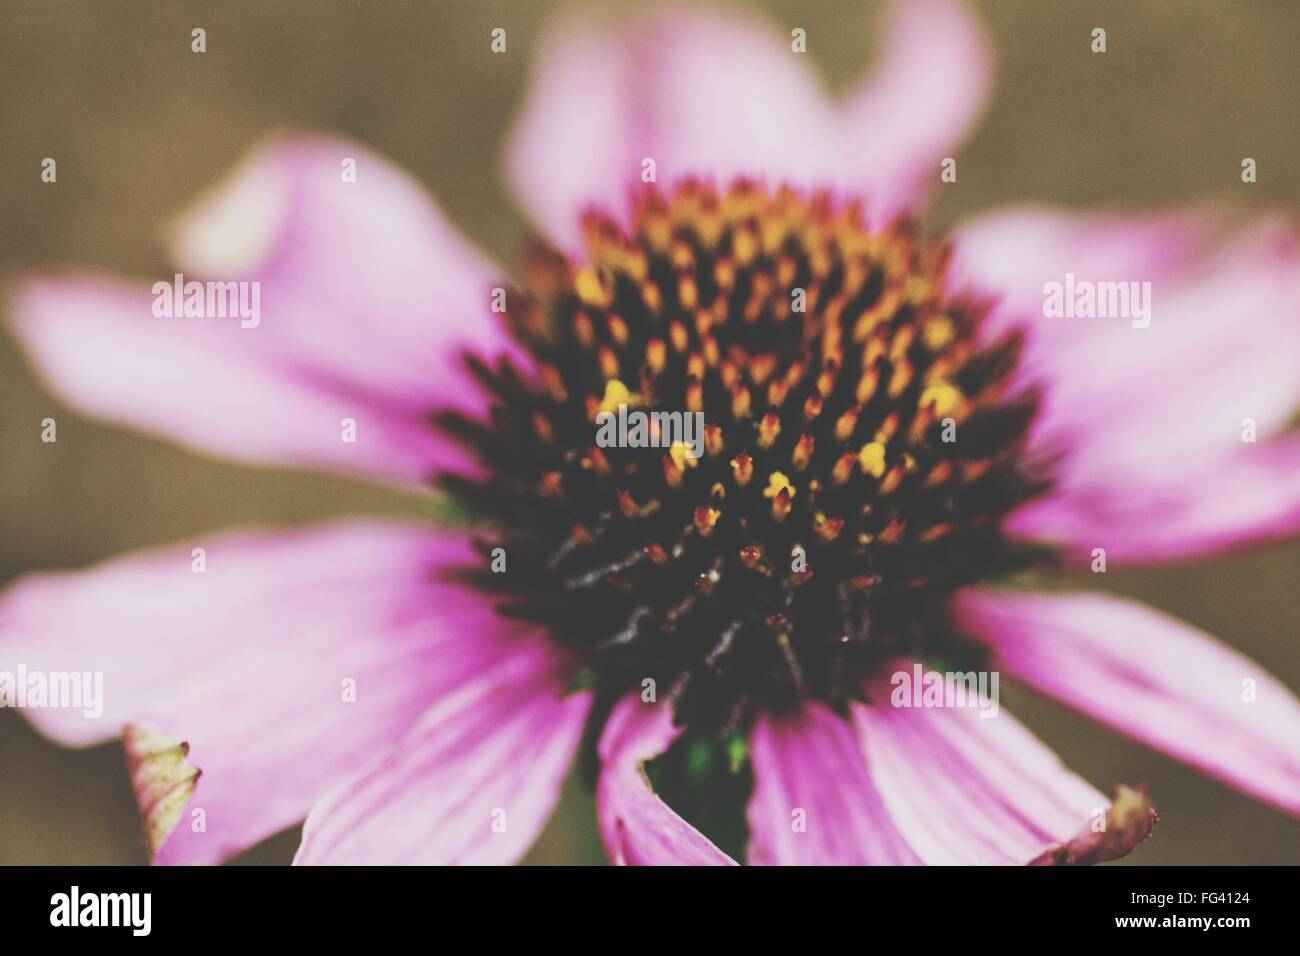 Close-Up Of Eastern Purple Coneflower Blooming On Field - Stock Image